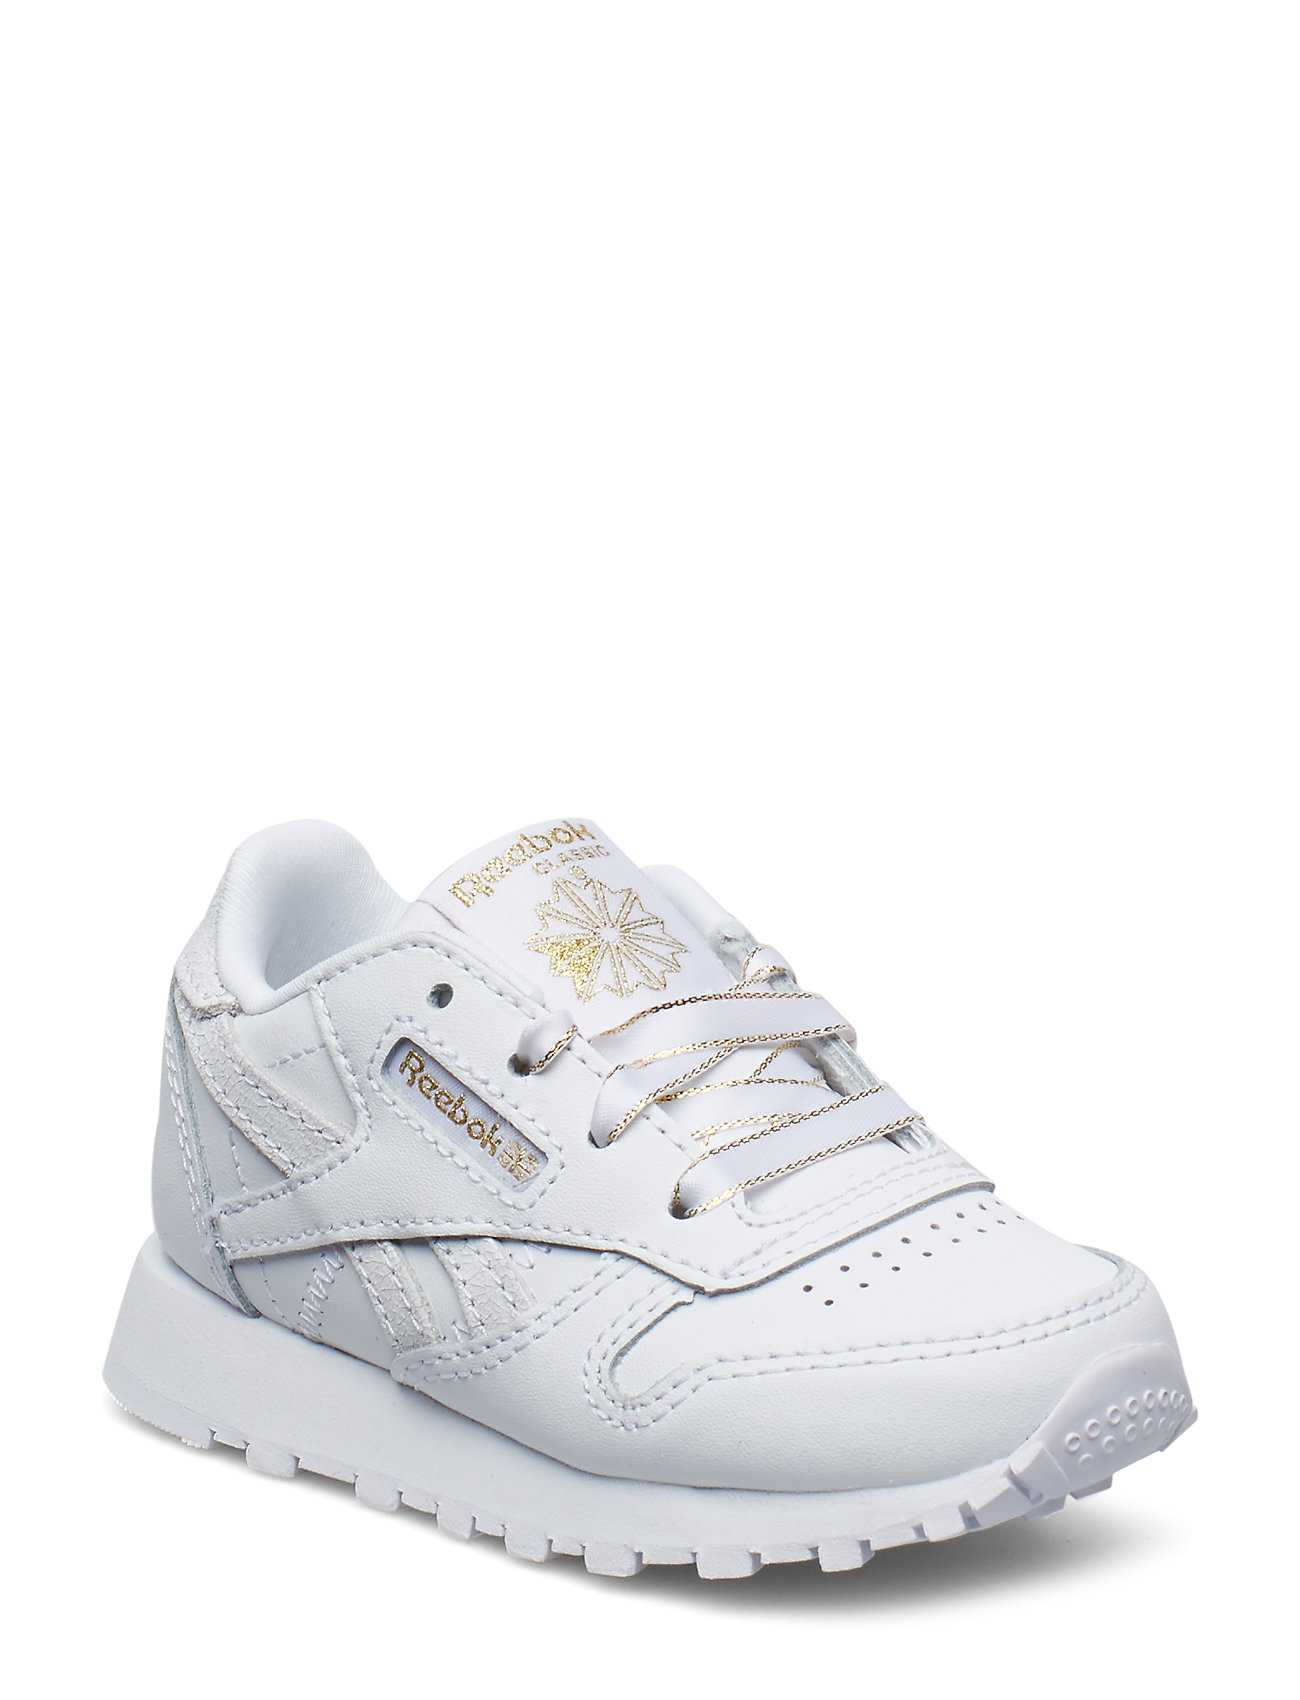 Reebok Classics CLASSIC LEATHER - WHITE/CHALK/GOLD